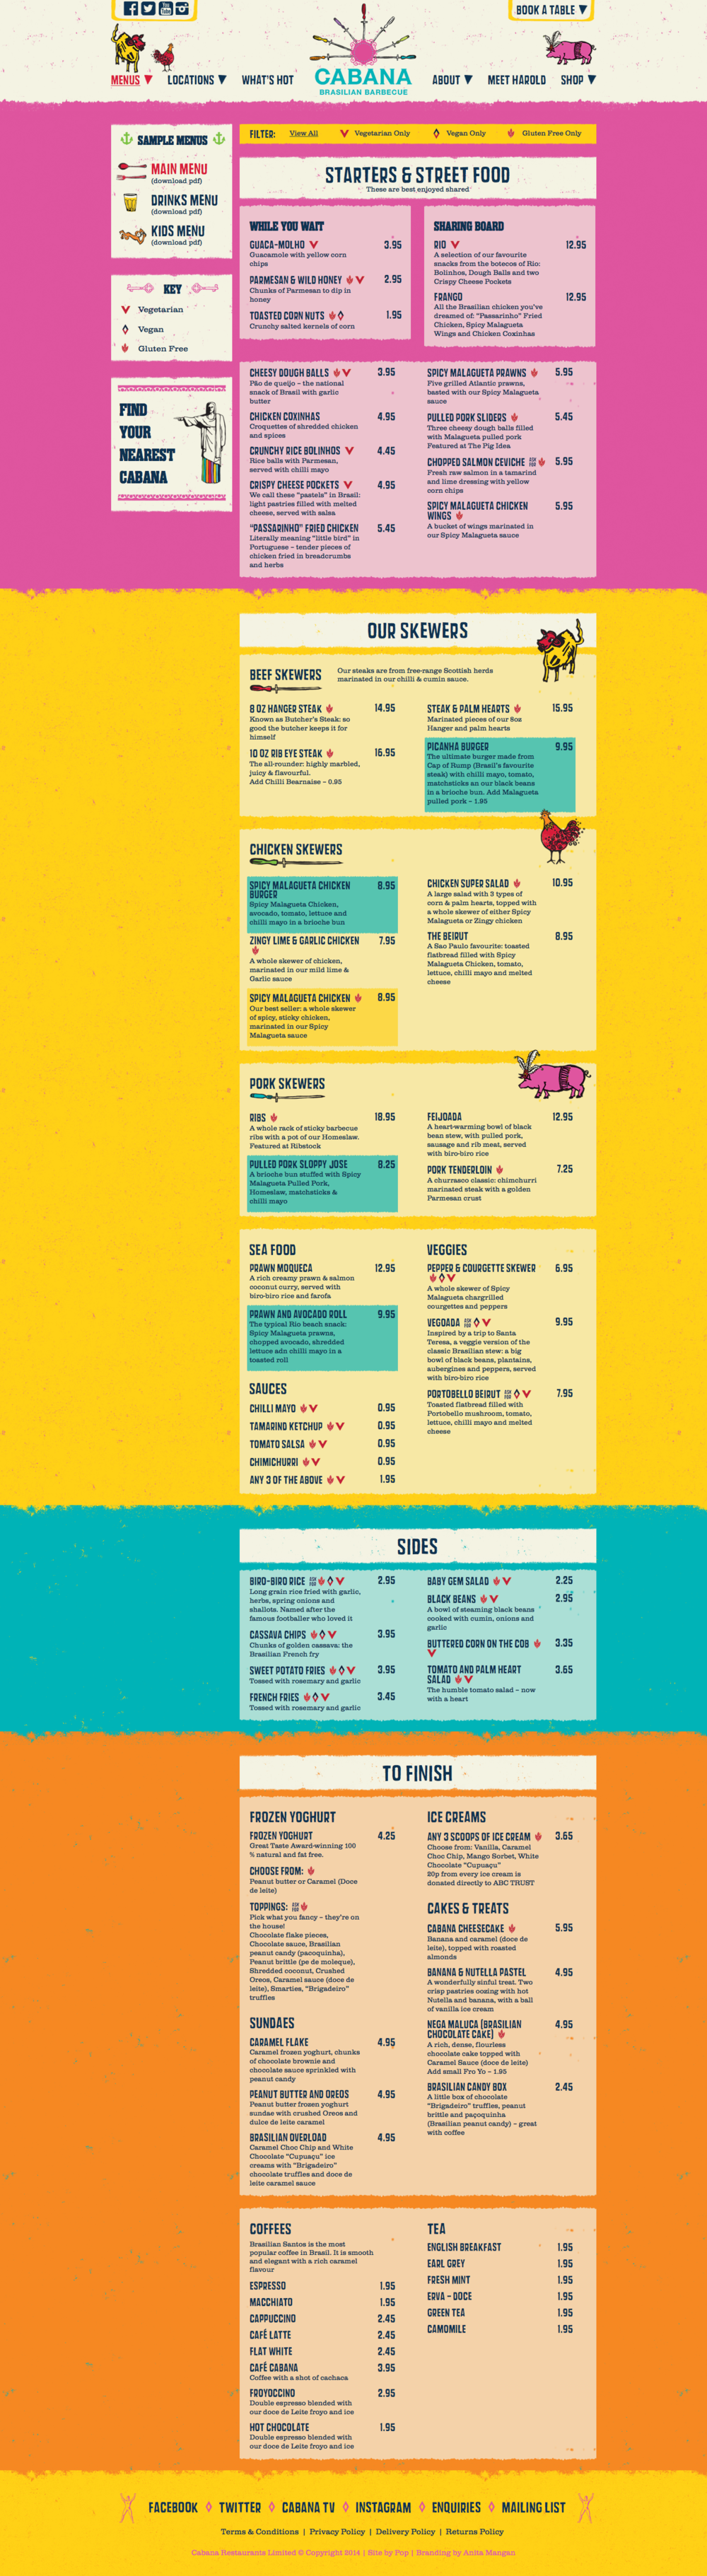 Cabana Menu Page - Click to enlarge